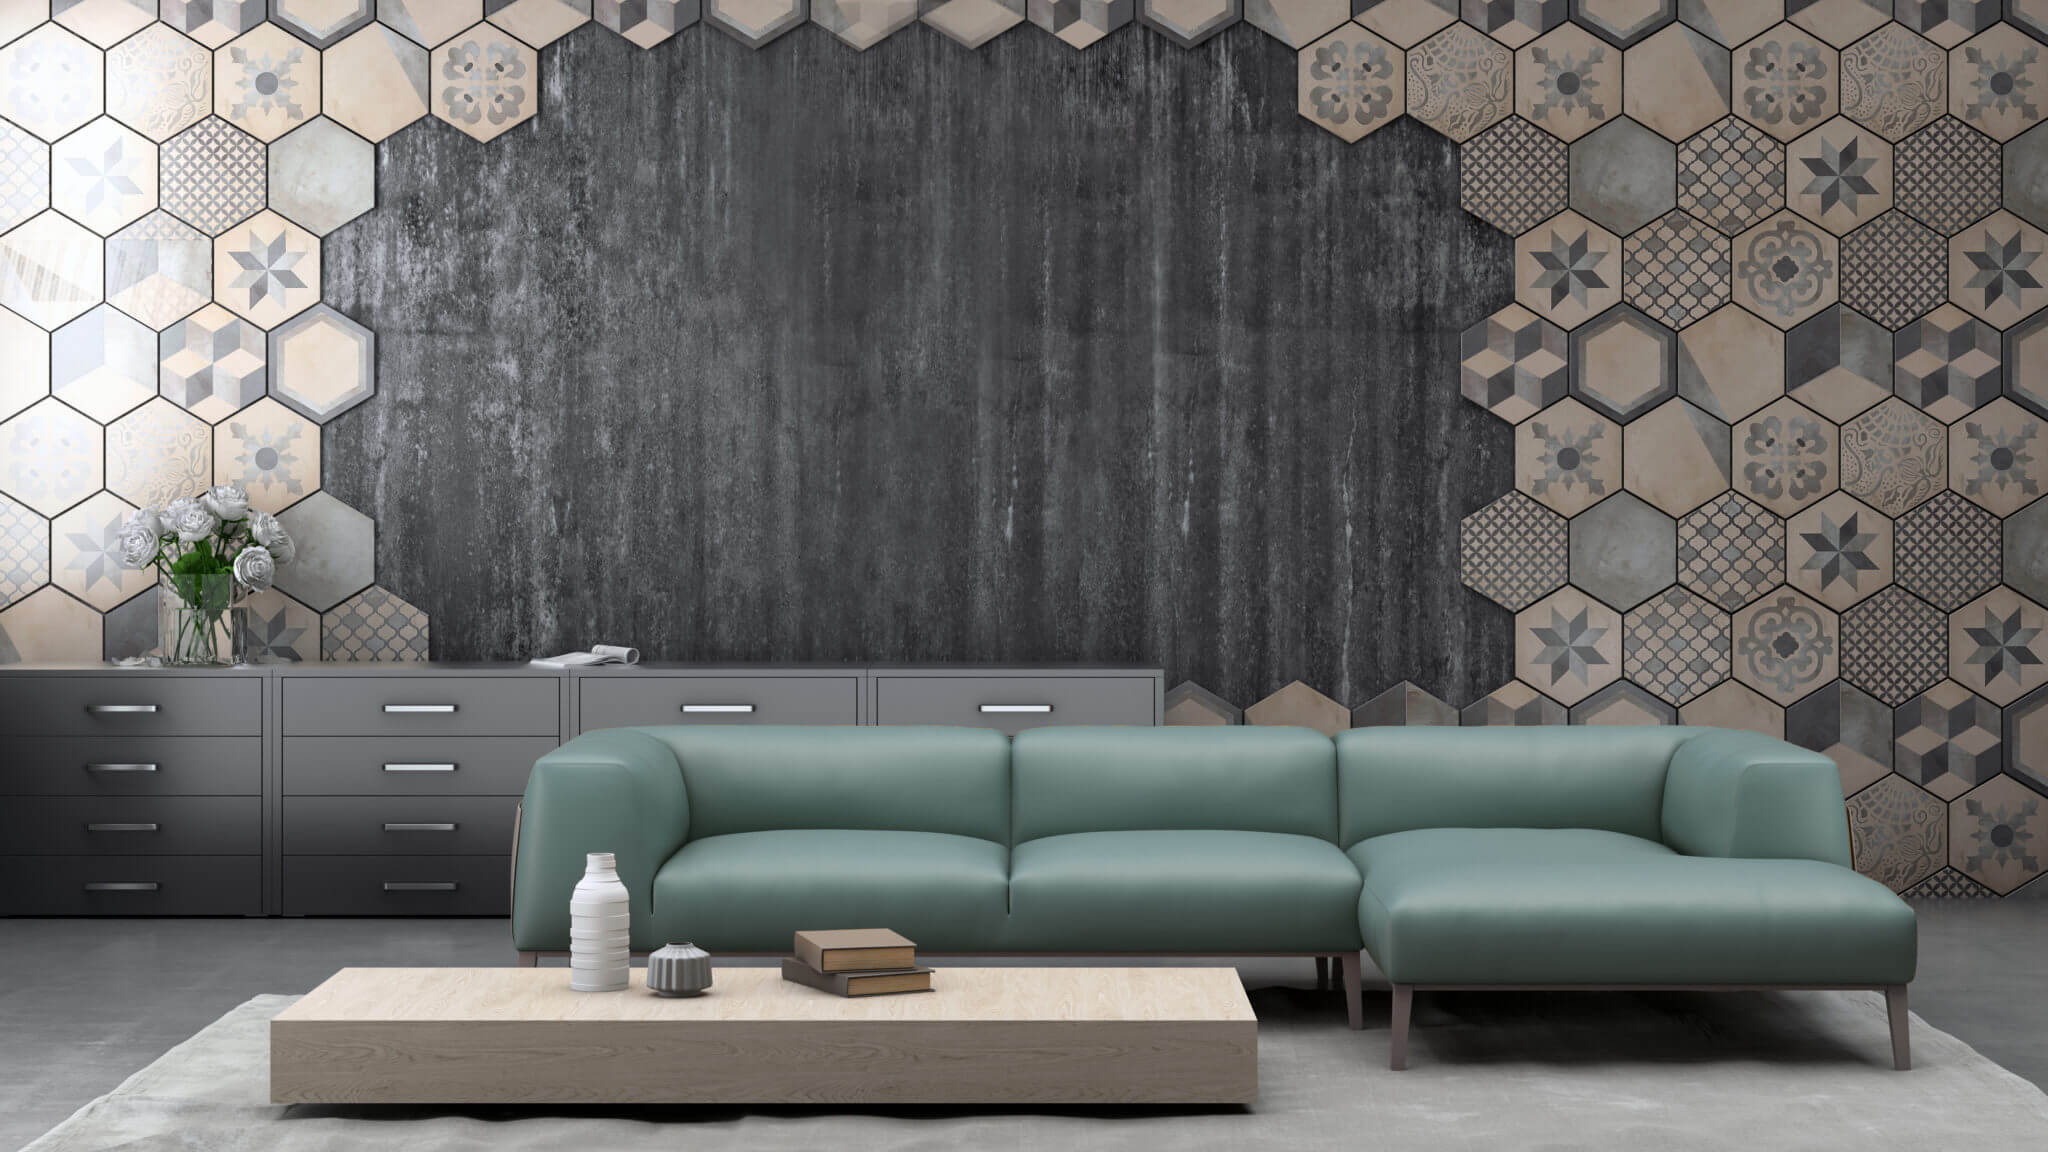 Patterned beige hexagon wall tiles in a staggered design